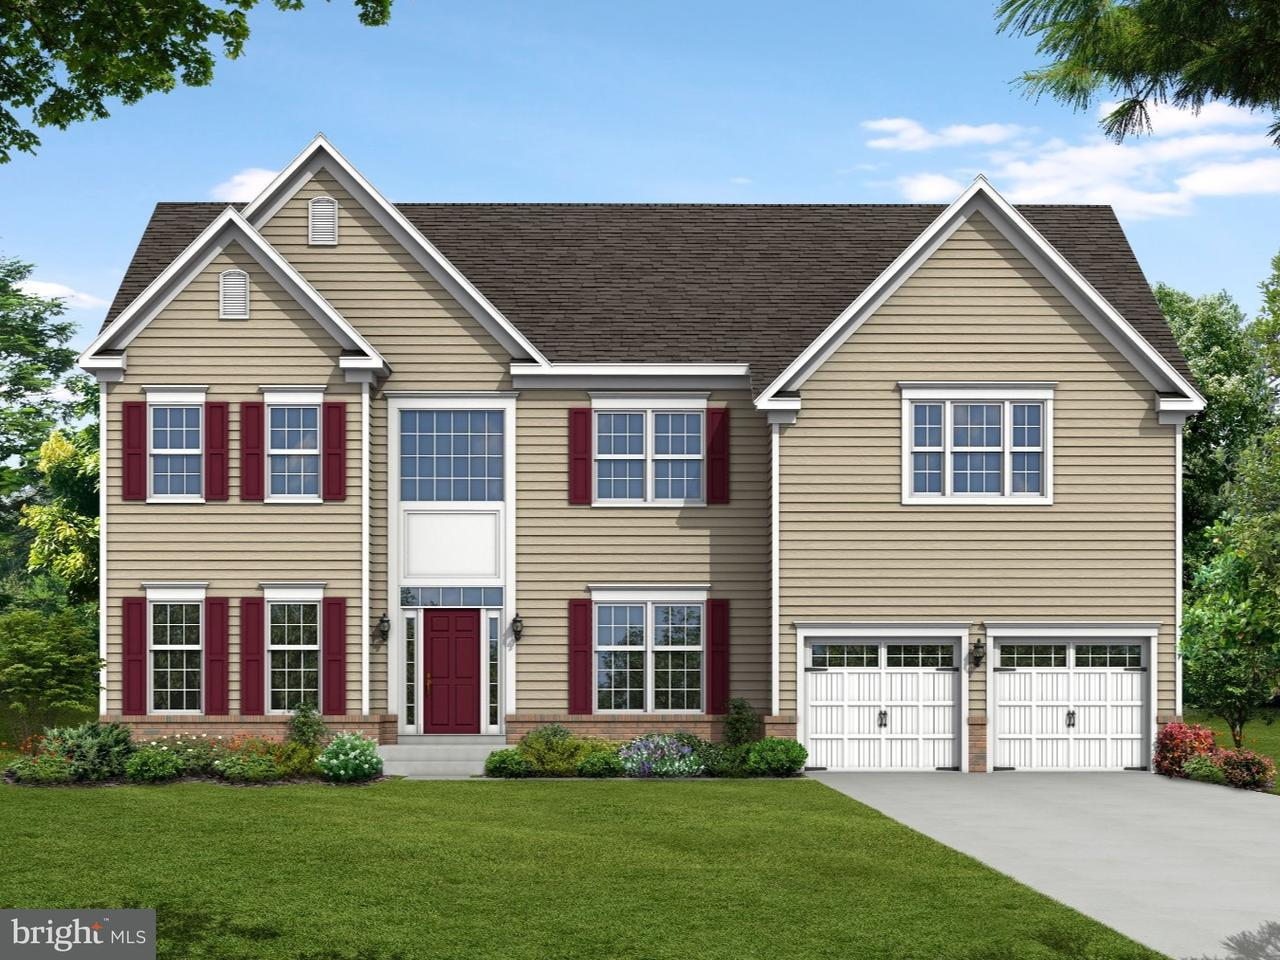 Single Family Home for Sale at 219 WAT E CRAIL Court Middletown, Delaware 19709 United States